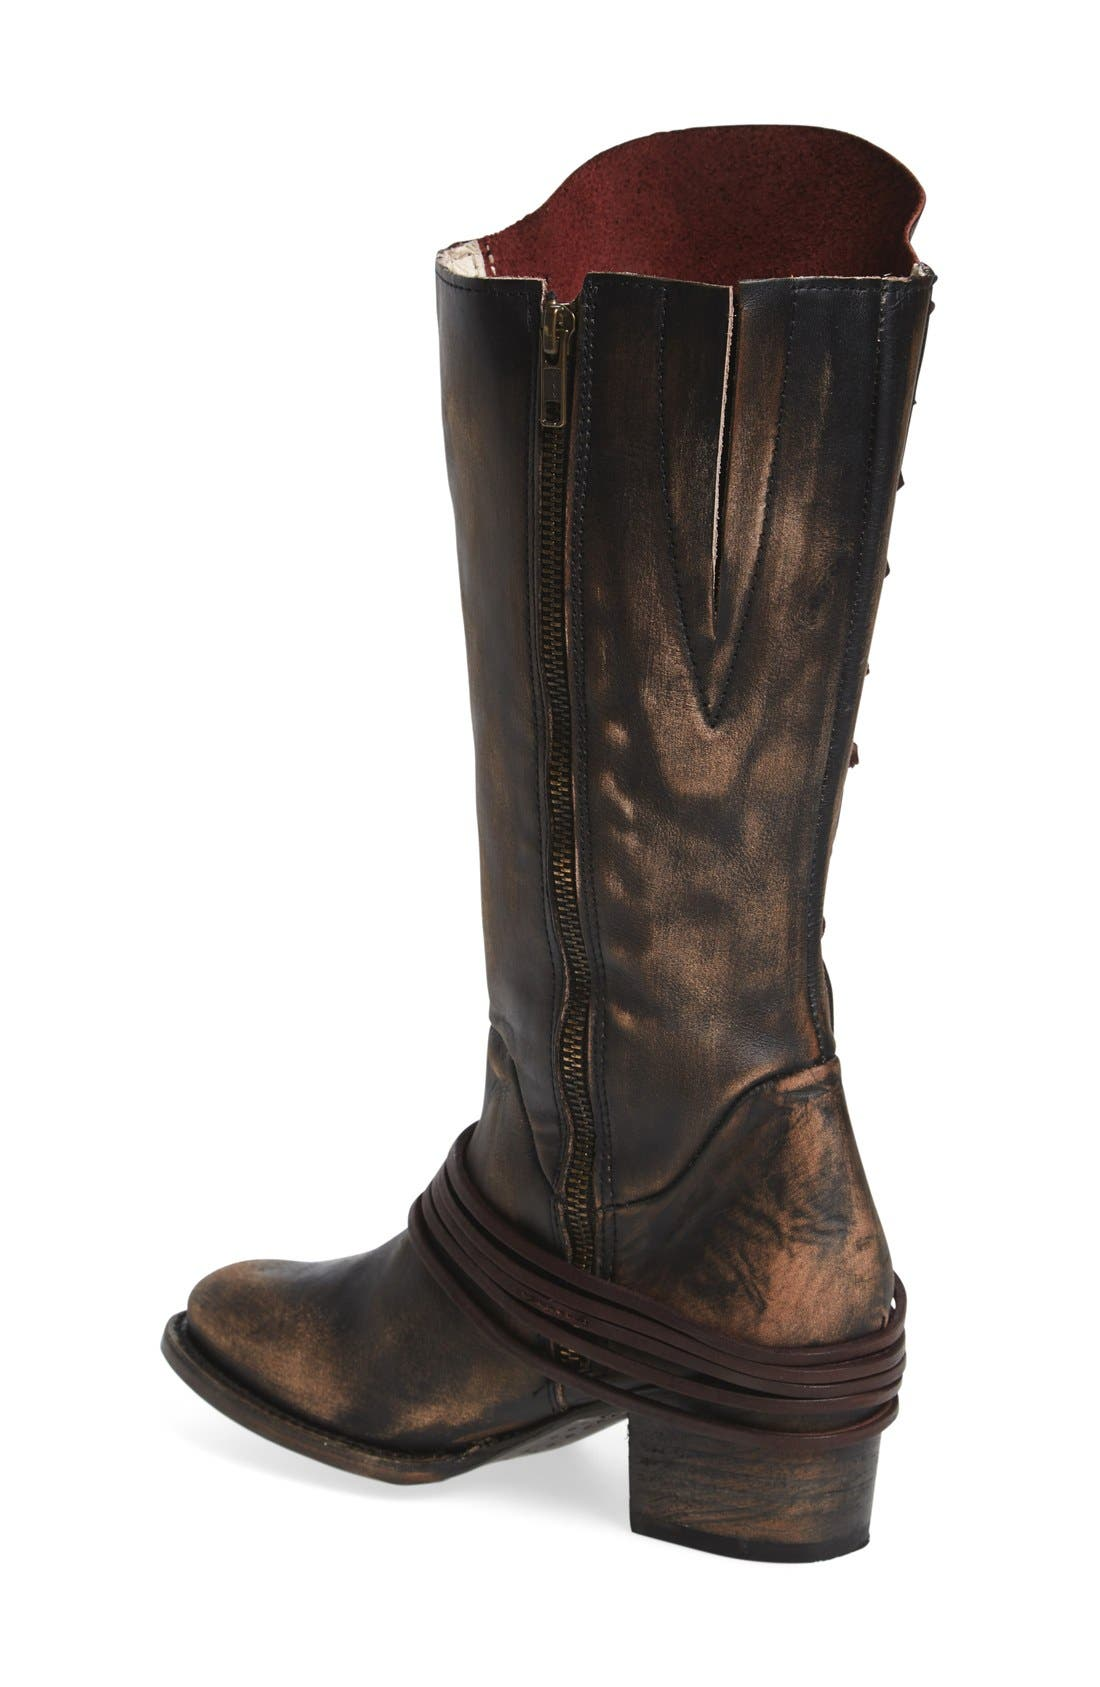 'Cash' Tall Boot,                             Alternate thumbnail 2, color,                             Brown Multi Leather